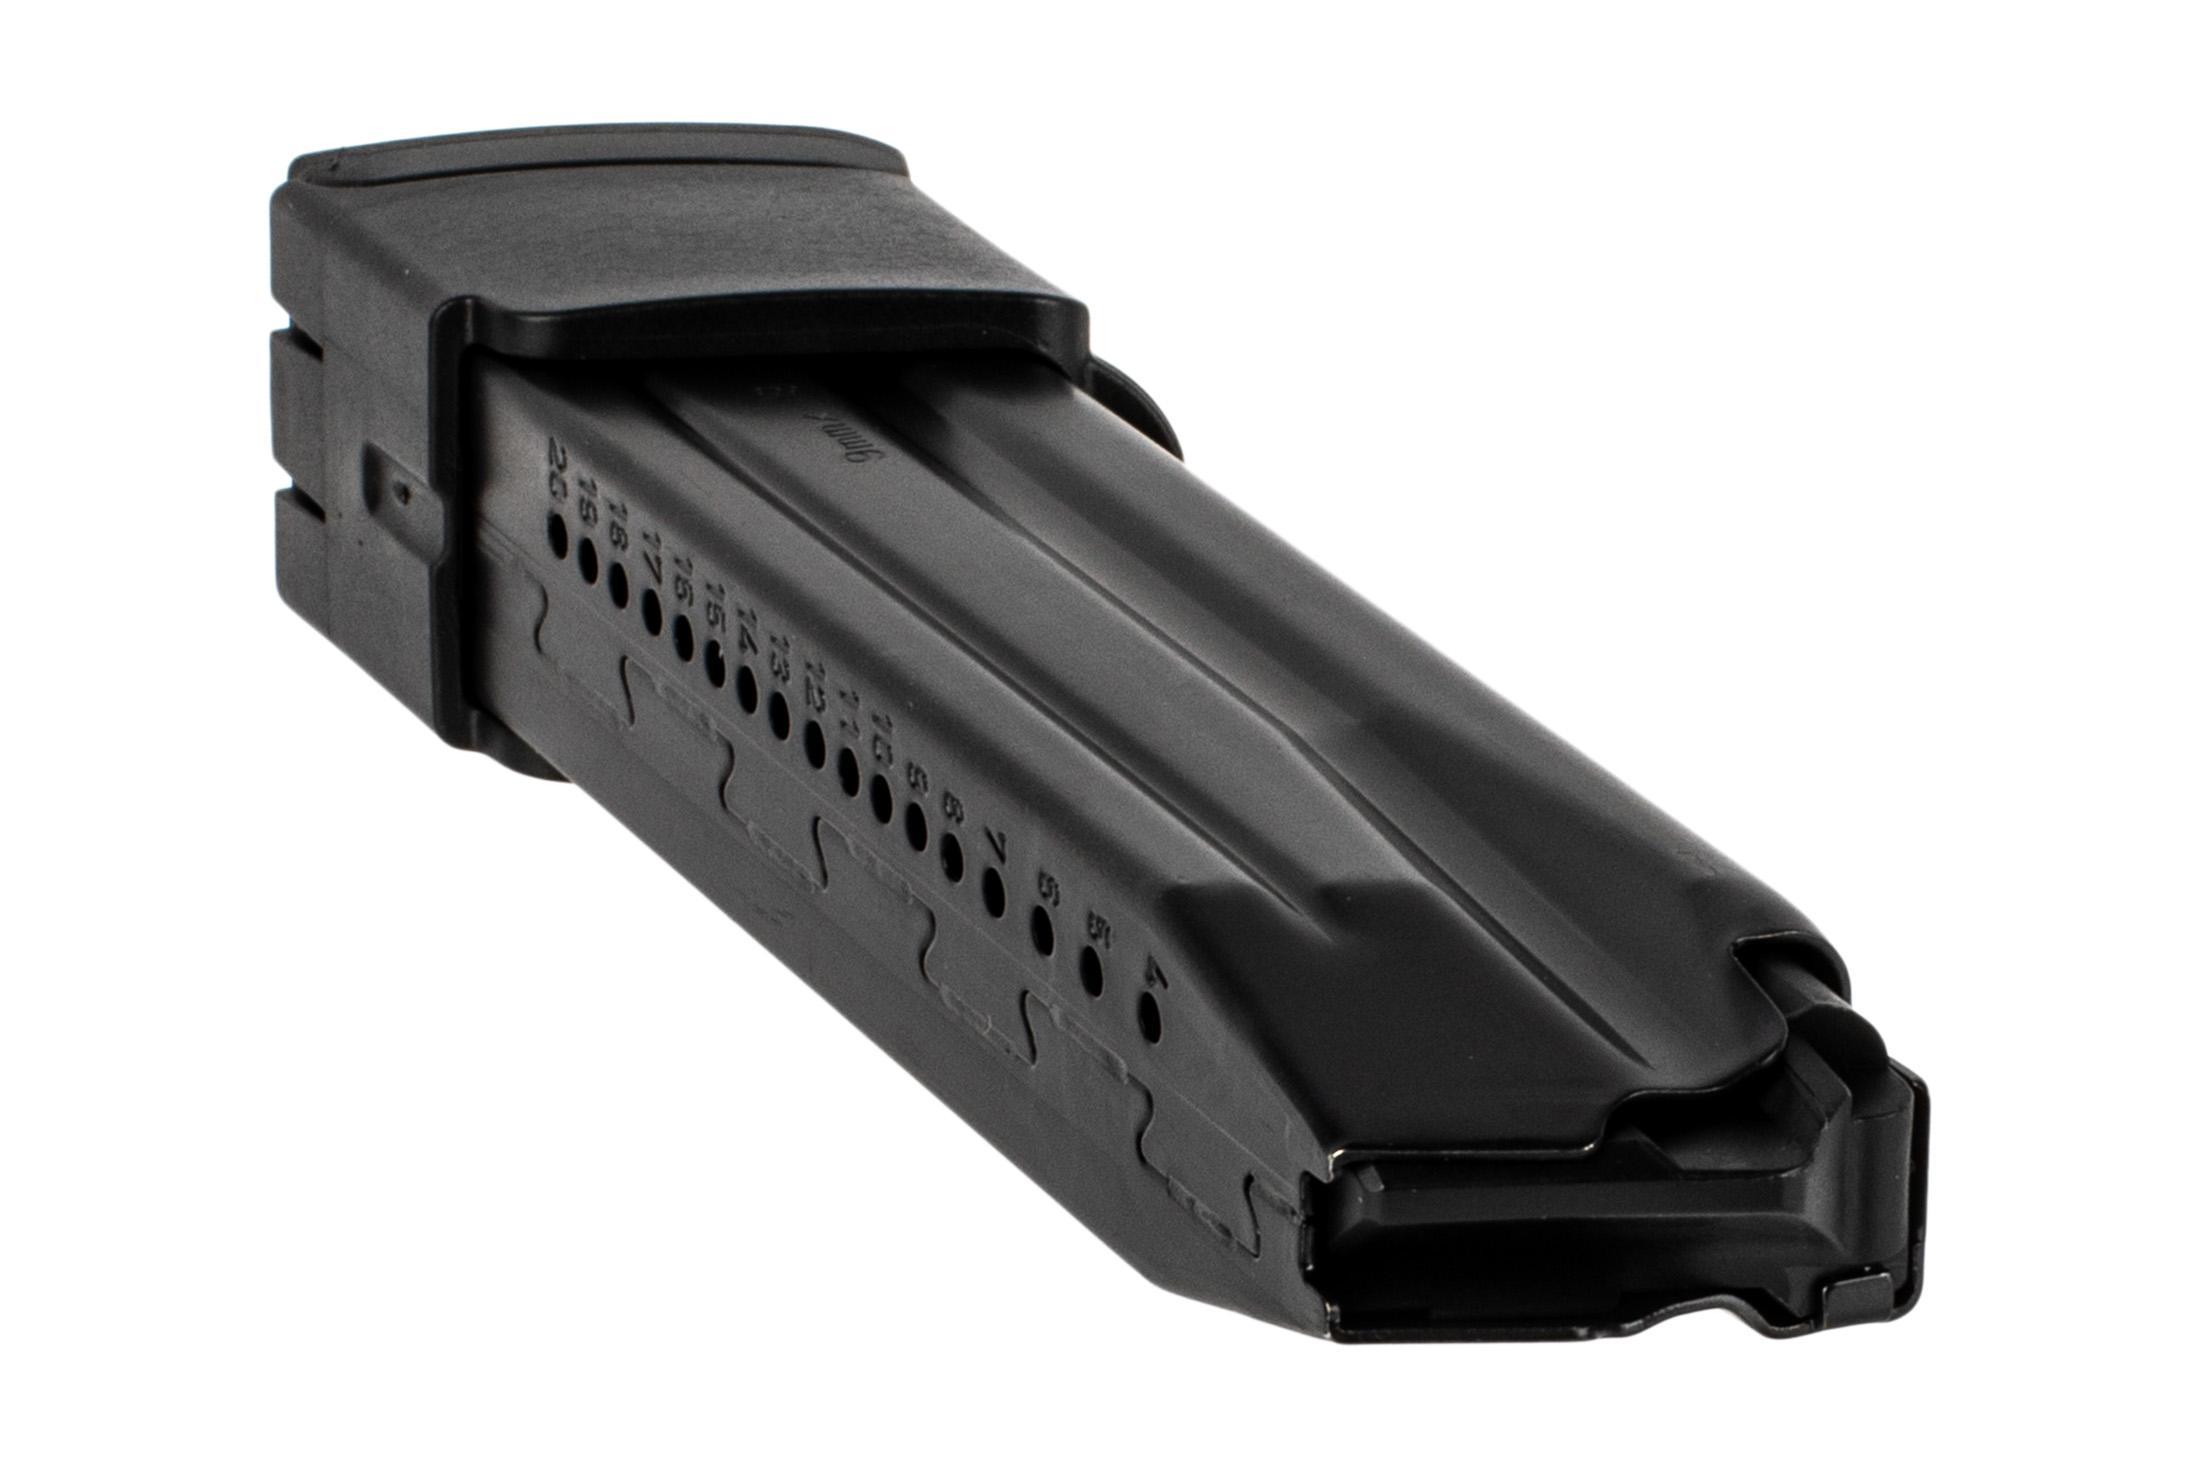 H&K P30 20 round magazine features steel construction and rear witness holes